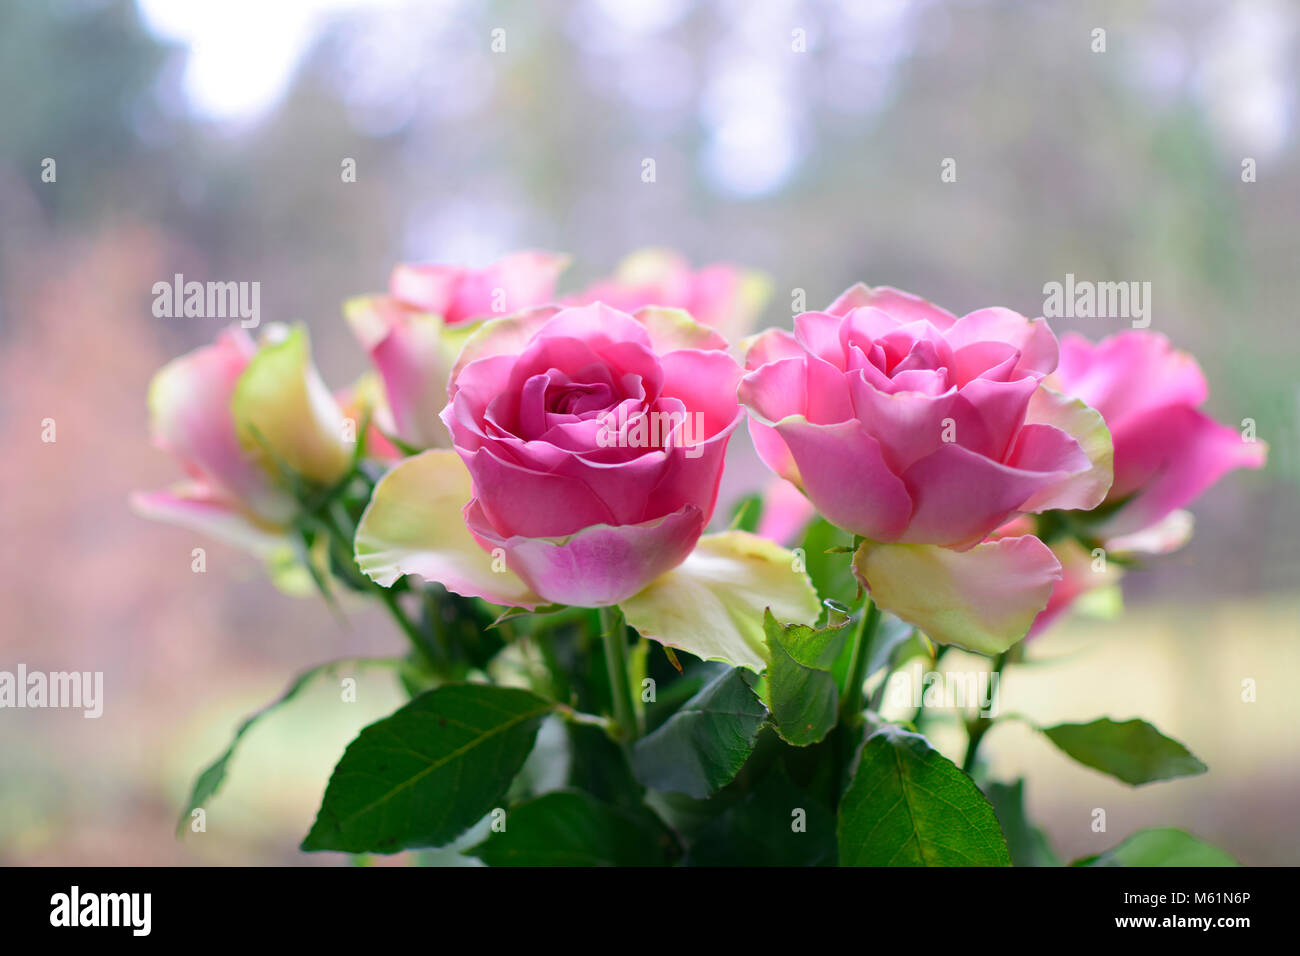 Rose bud wallpaper stock photos rose bud wallpaper stock images beautiful pink rose on blurred texture background romantic symbol for your pattern your design izmirmasajfo